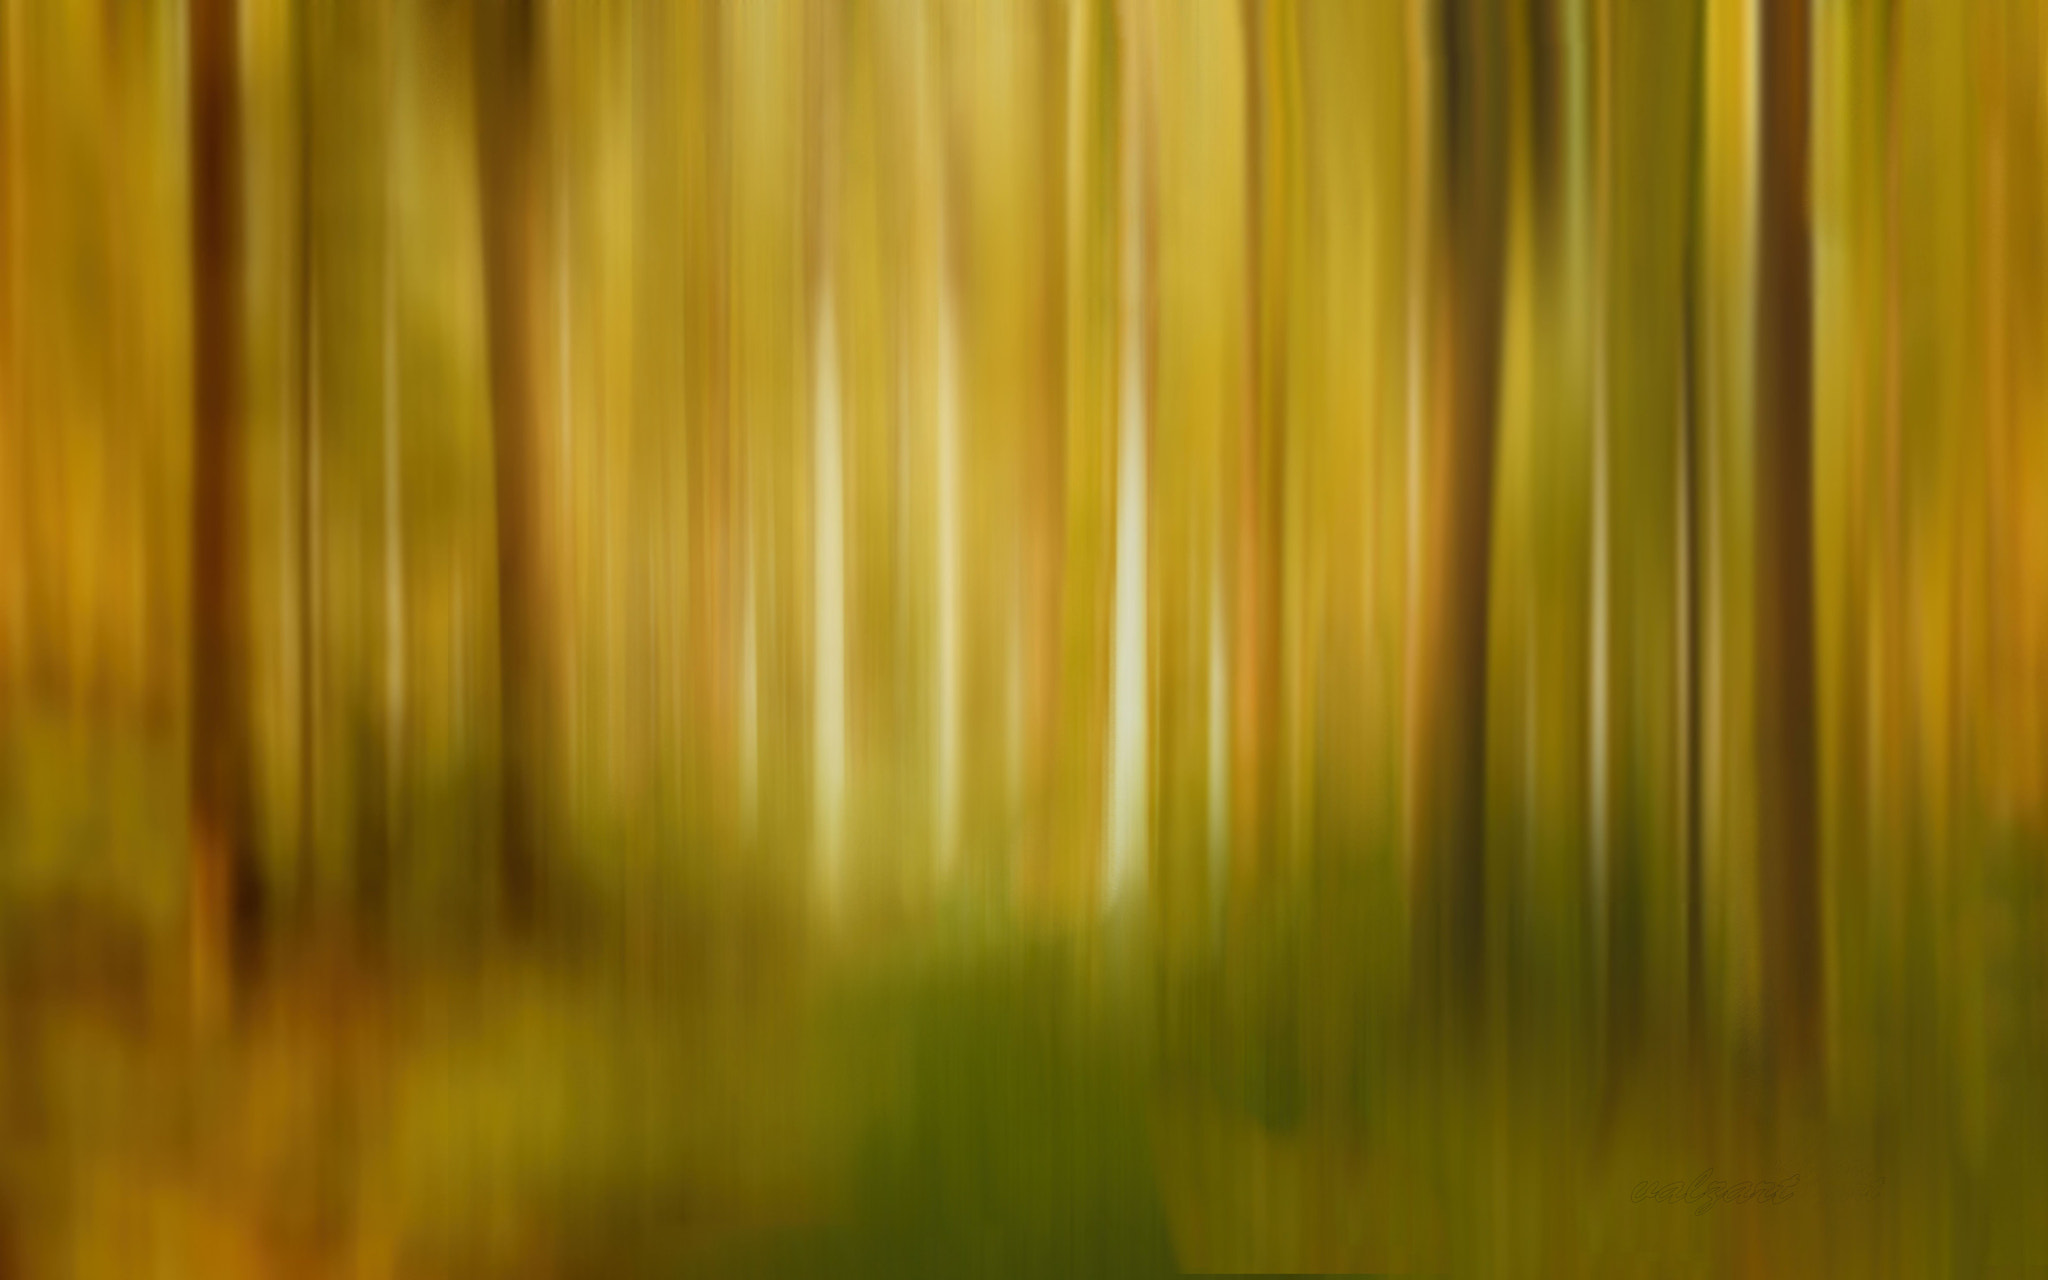 Photograph Forest light by Valerie Anne Kelly on 500px